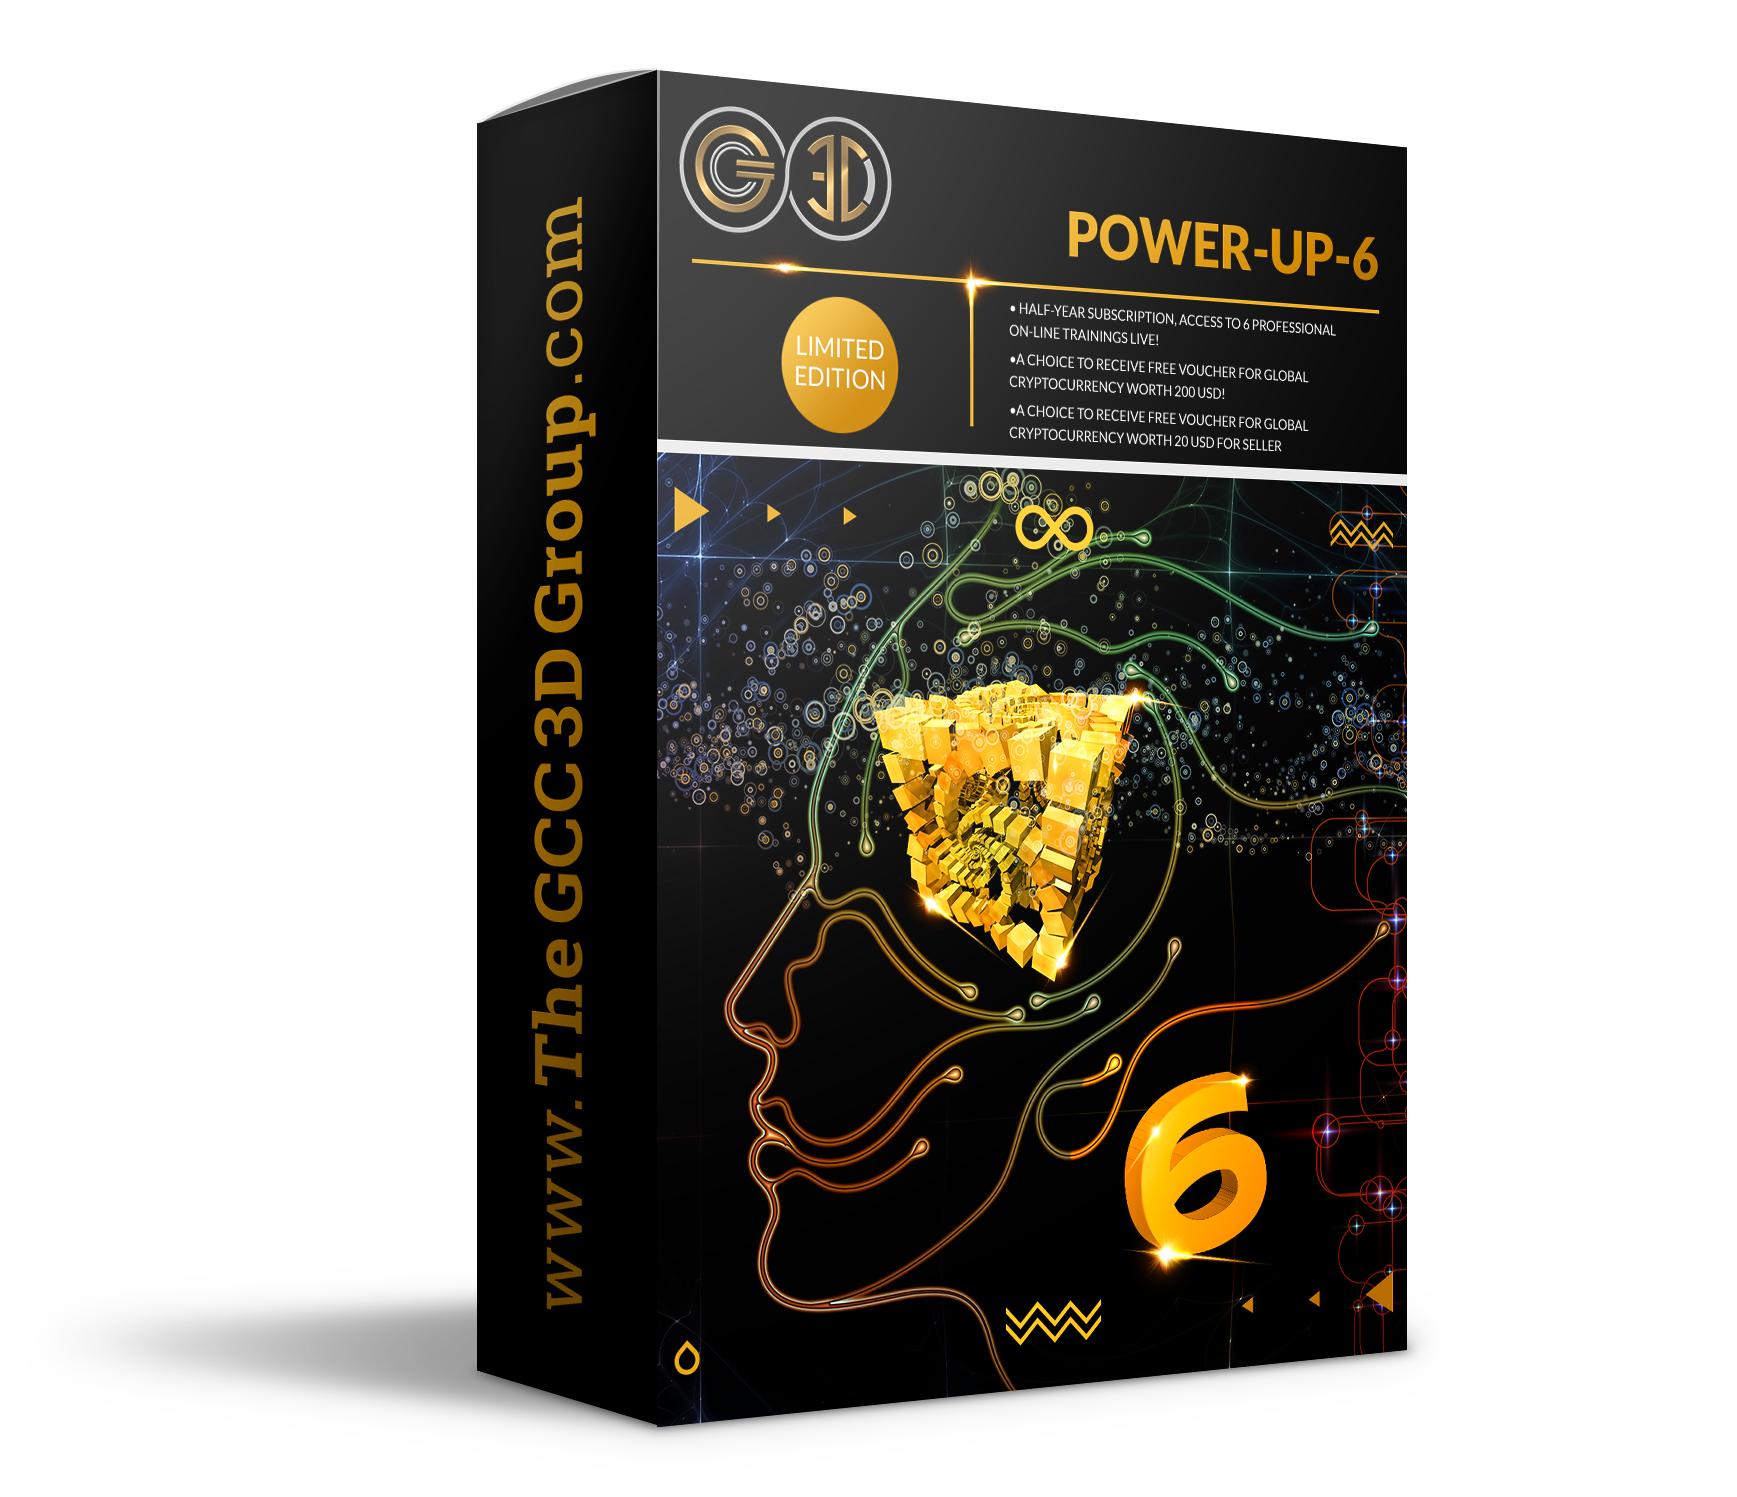 POWER-UP-6